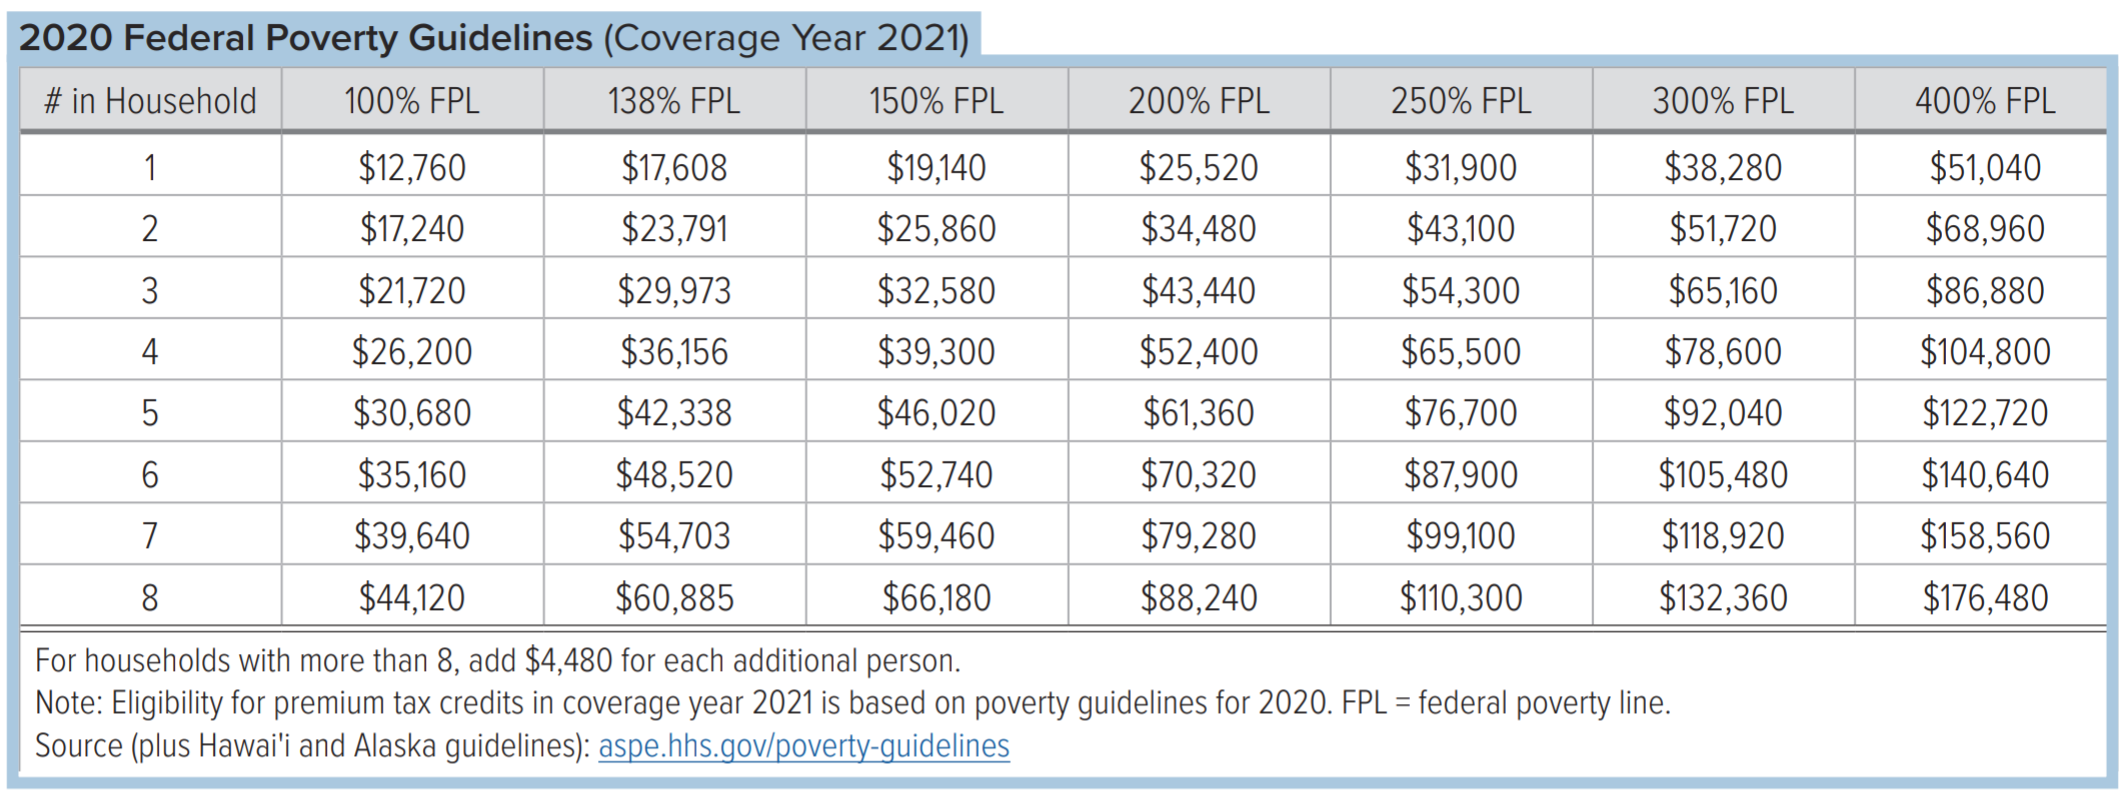 2020 Federal Poverty Guidelines (Coverage Year 2021)